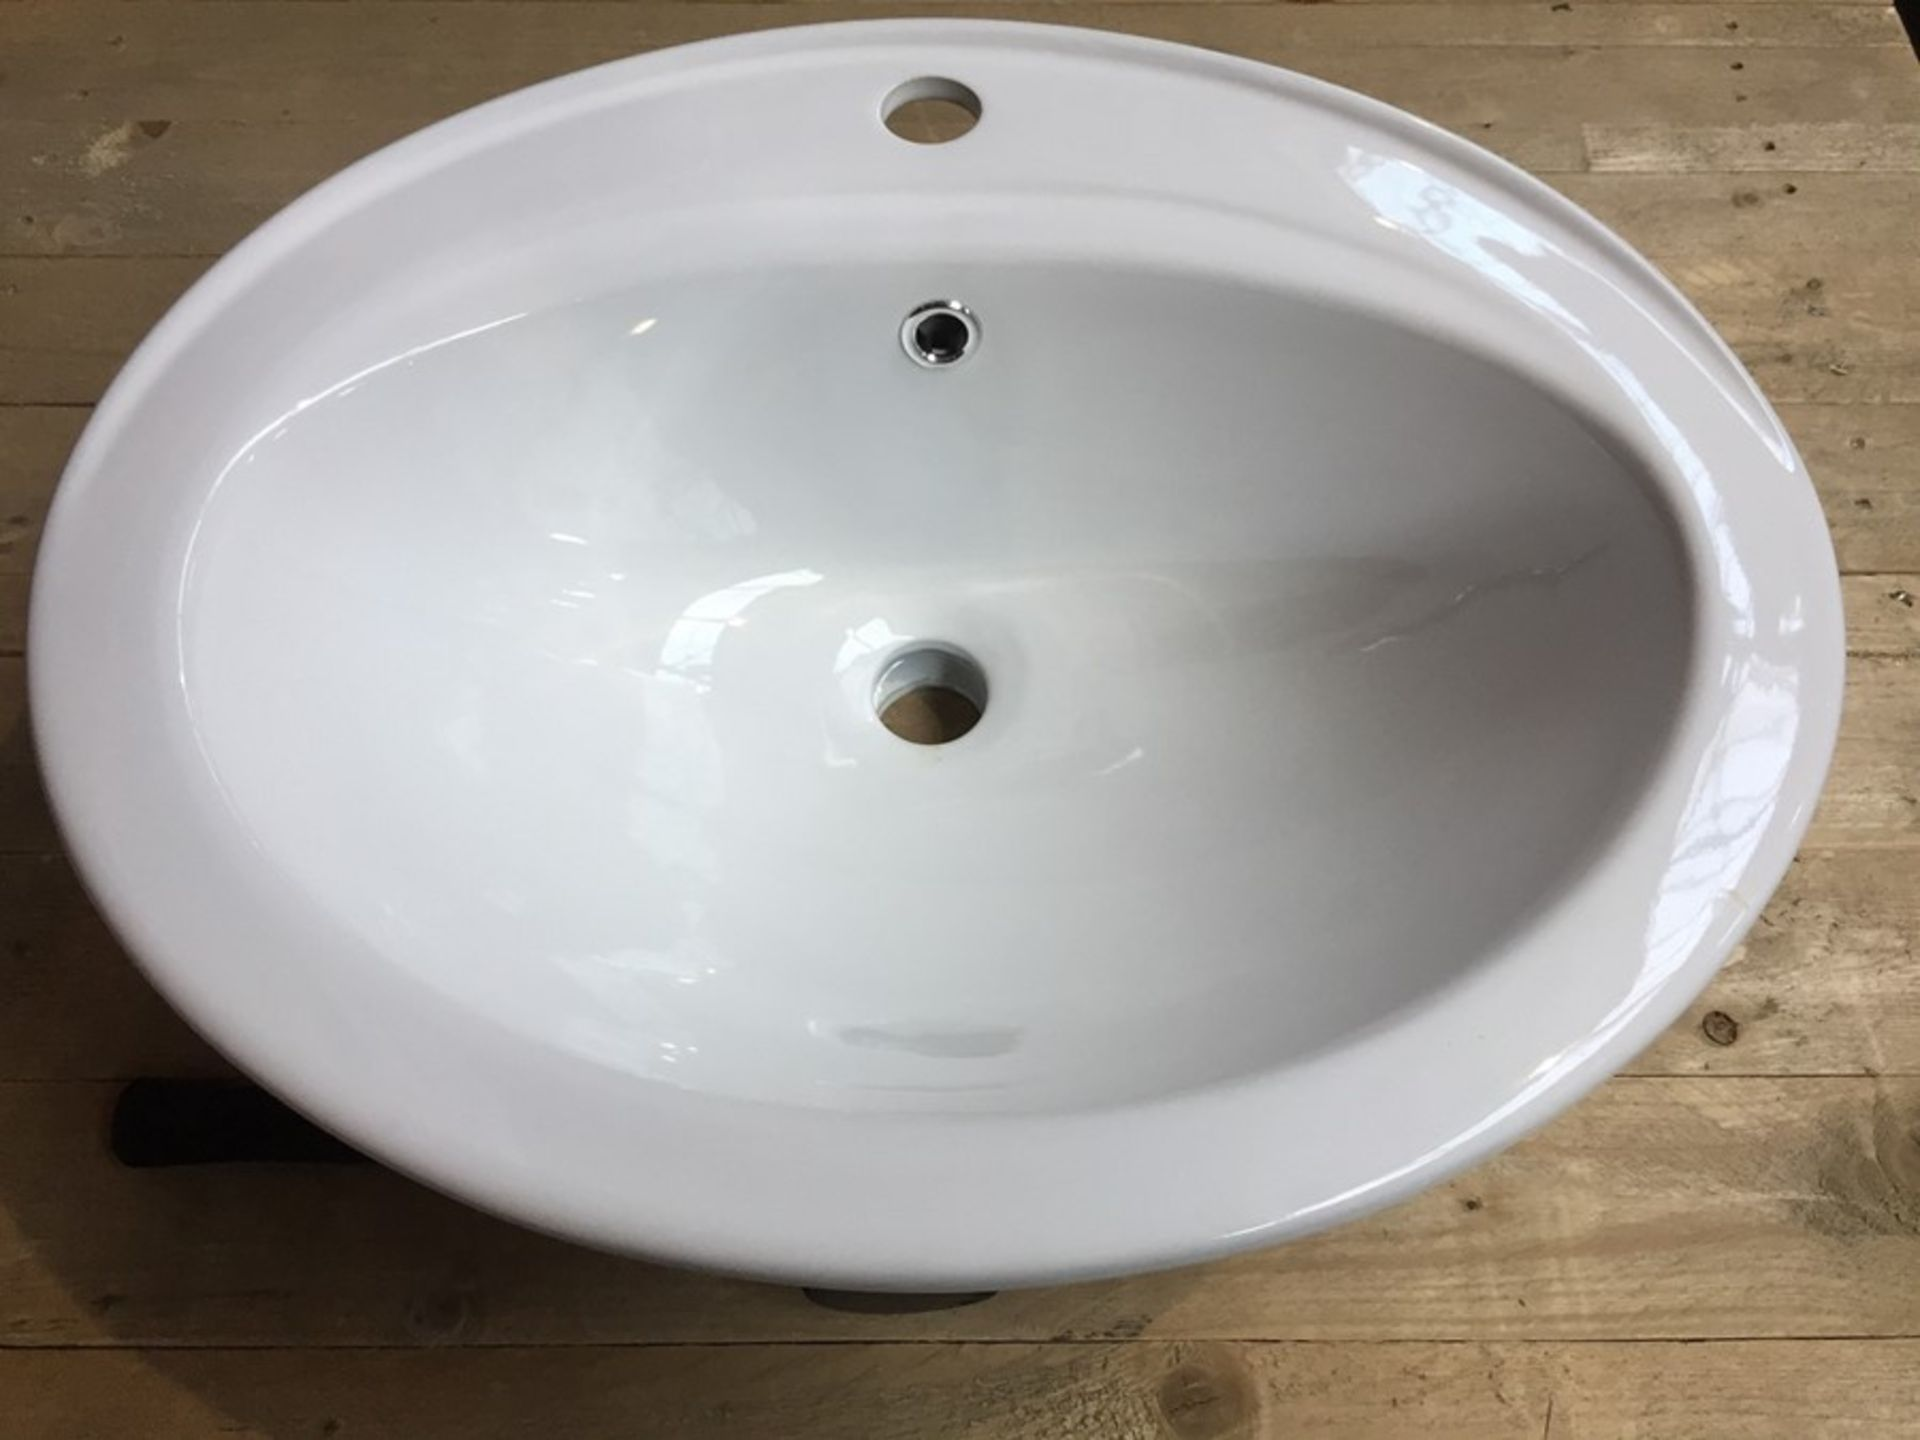 Lot 53 - 1 AS NEW BOXED OVAL INSET CERAMIC BASIN ONE TAP HOLE RRP £129.00 - C825.1